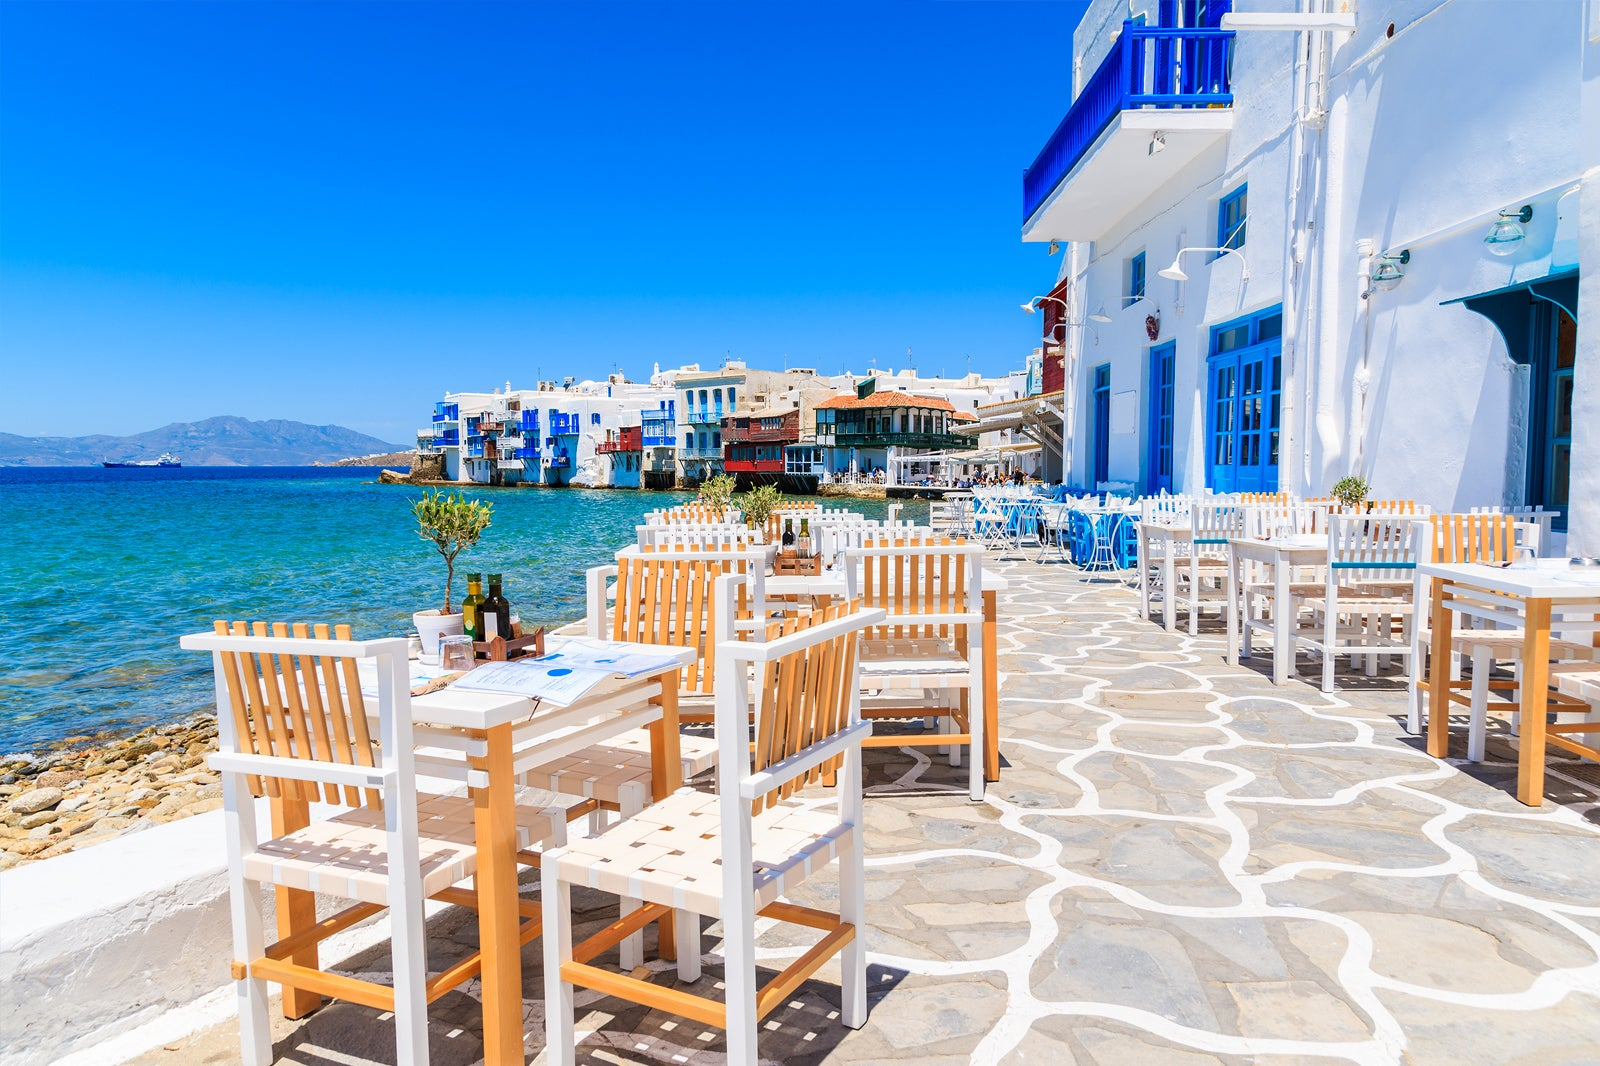 10 Most Instagrammable Spots In Mykonos Photos Of Mykonos You Brag About To Your Friends Go Guides